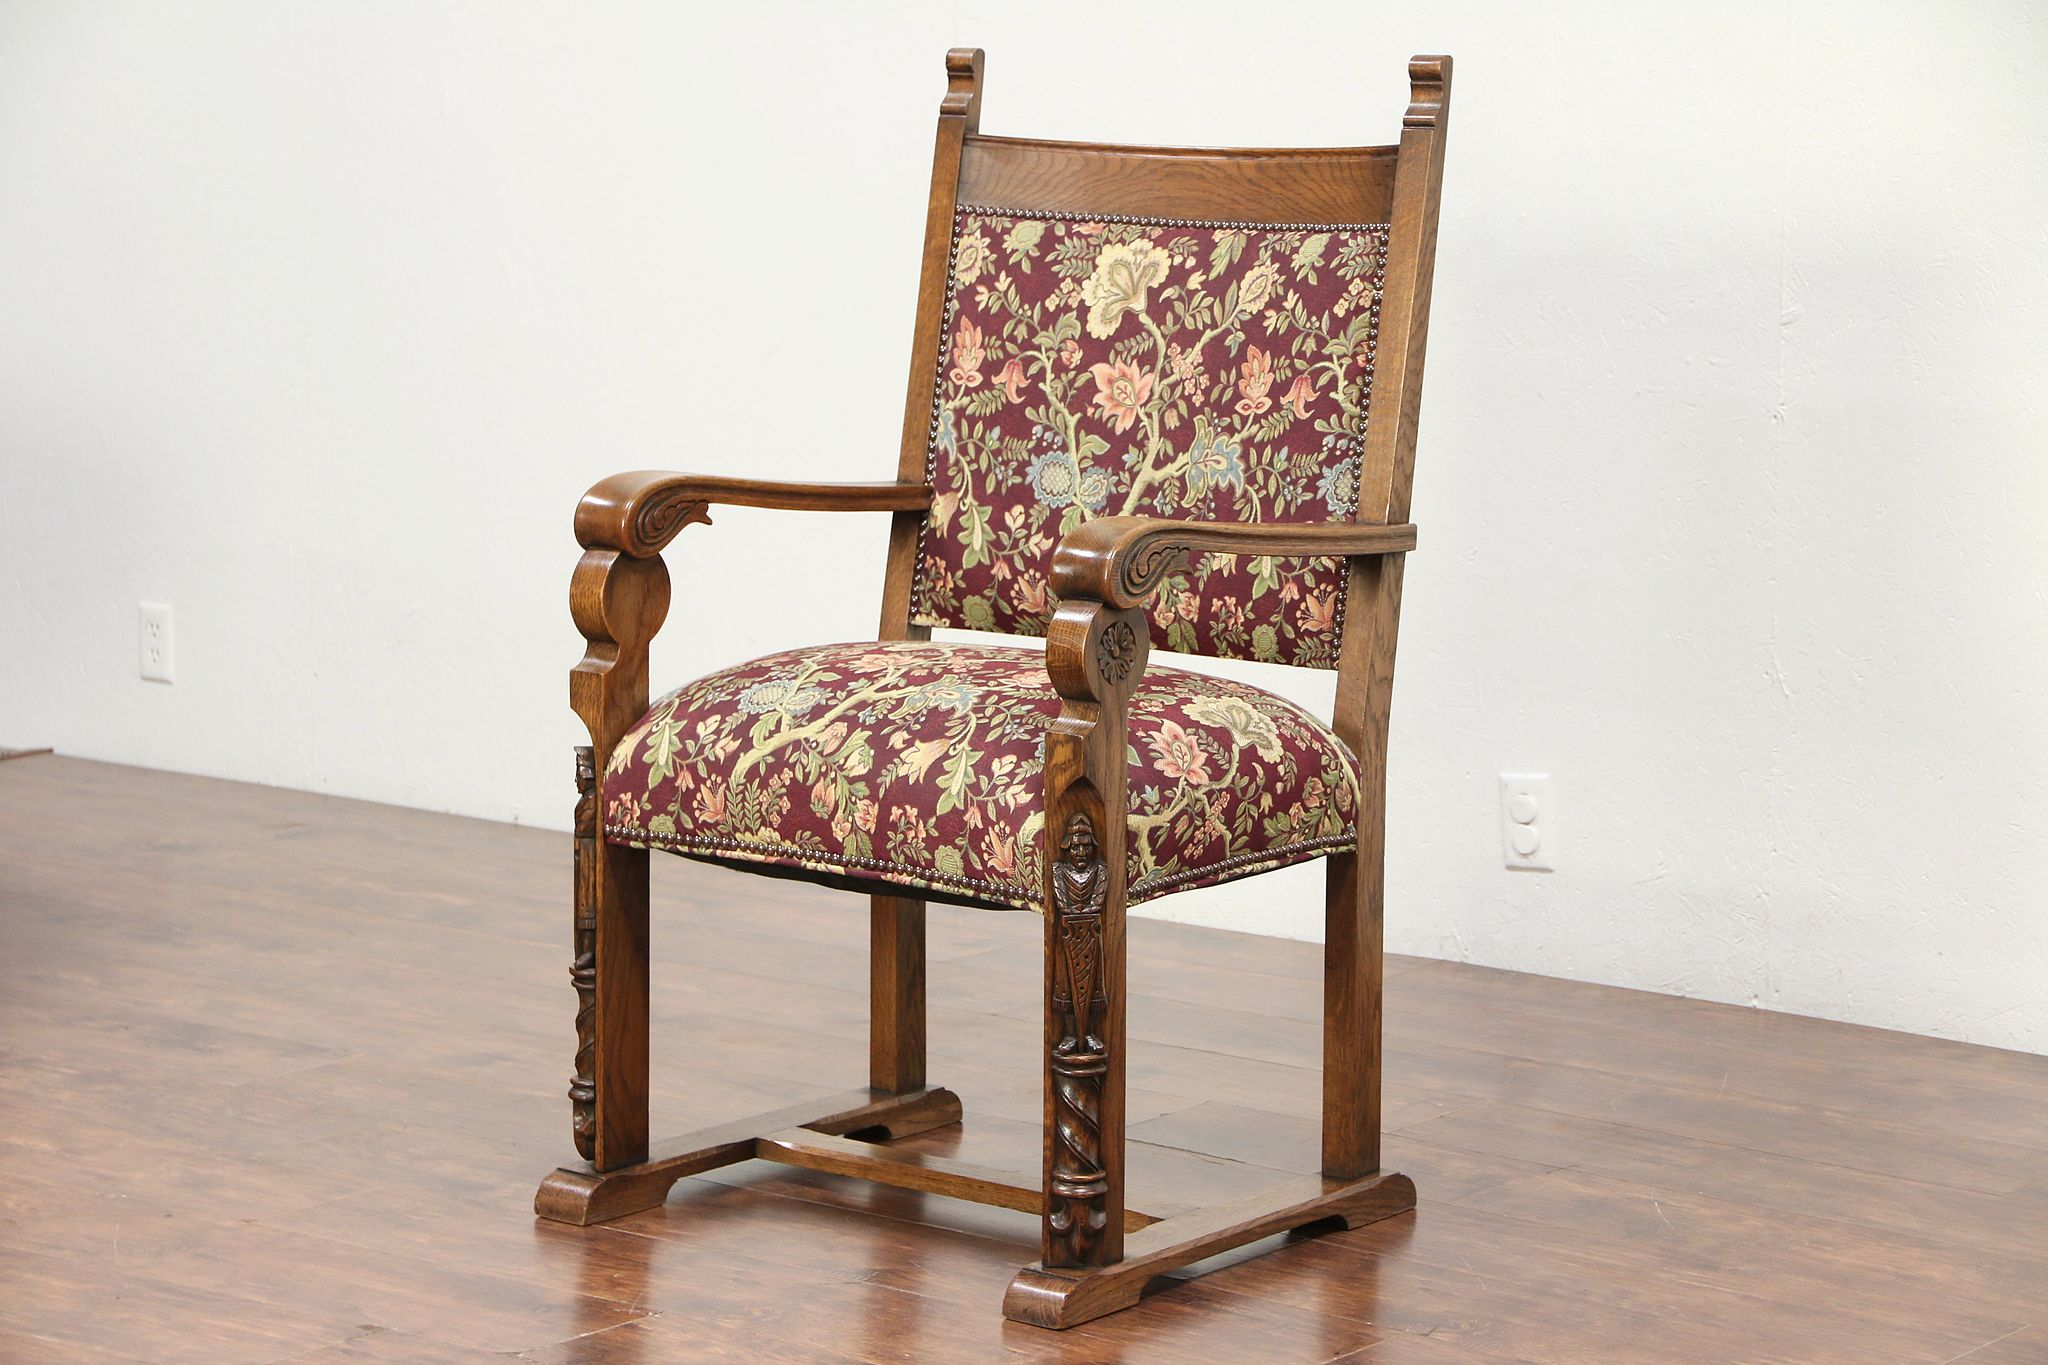 Sold Oak Antique Desk Chair Carved Knights Tapestry